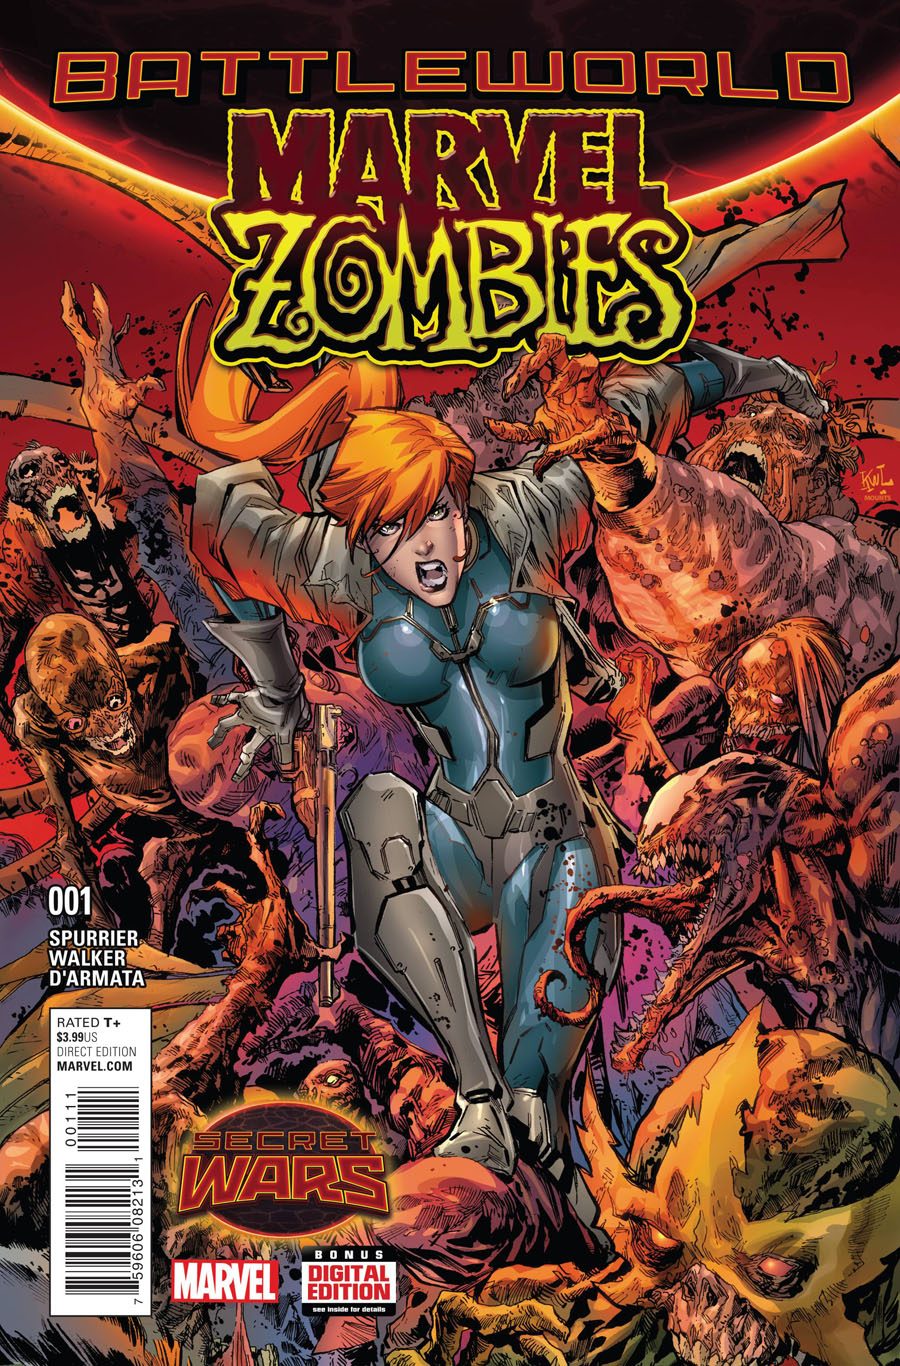 Marvel Zombies Vol 6 #1 Cover A Regular Ken Lashley Cover (Secret Wars Battleworld Tie-In)